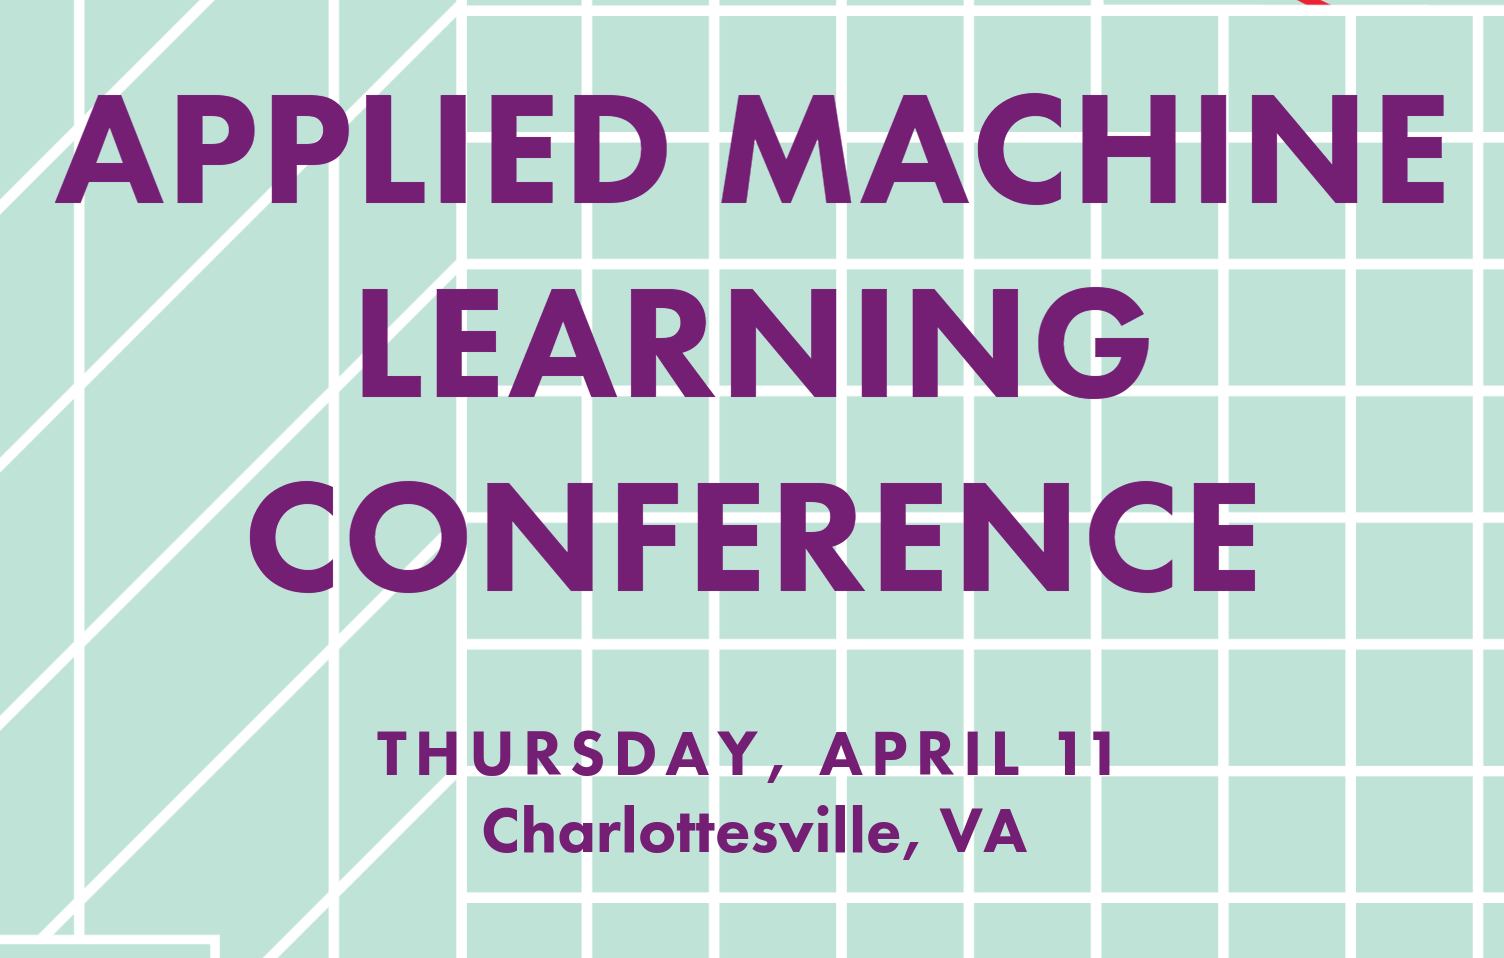 TOMTOM APPLIED MACHINE LEARNING CONF APR 11